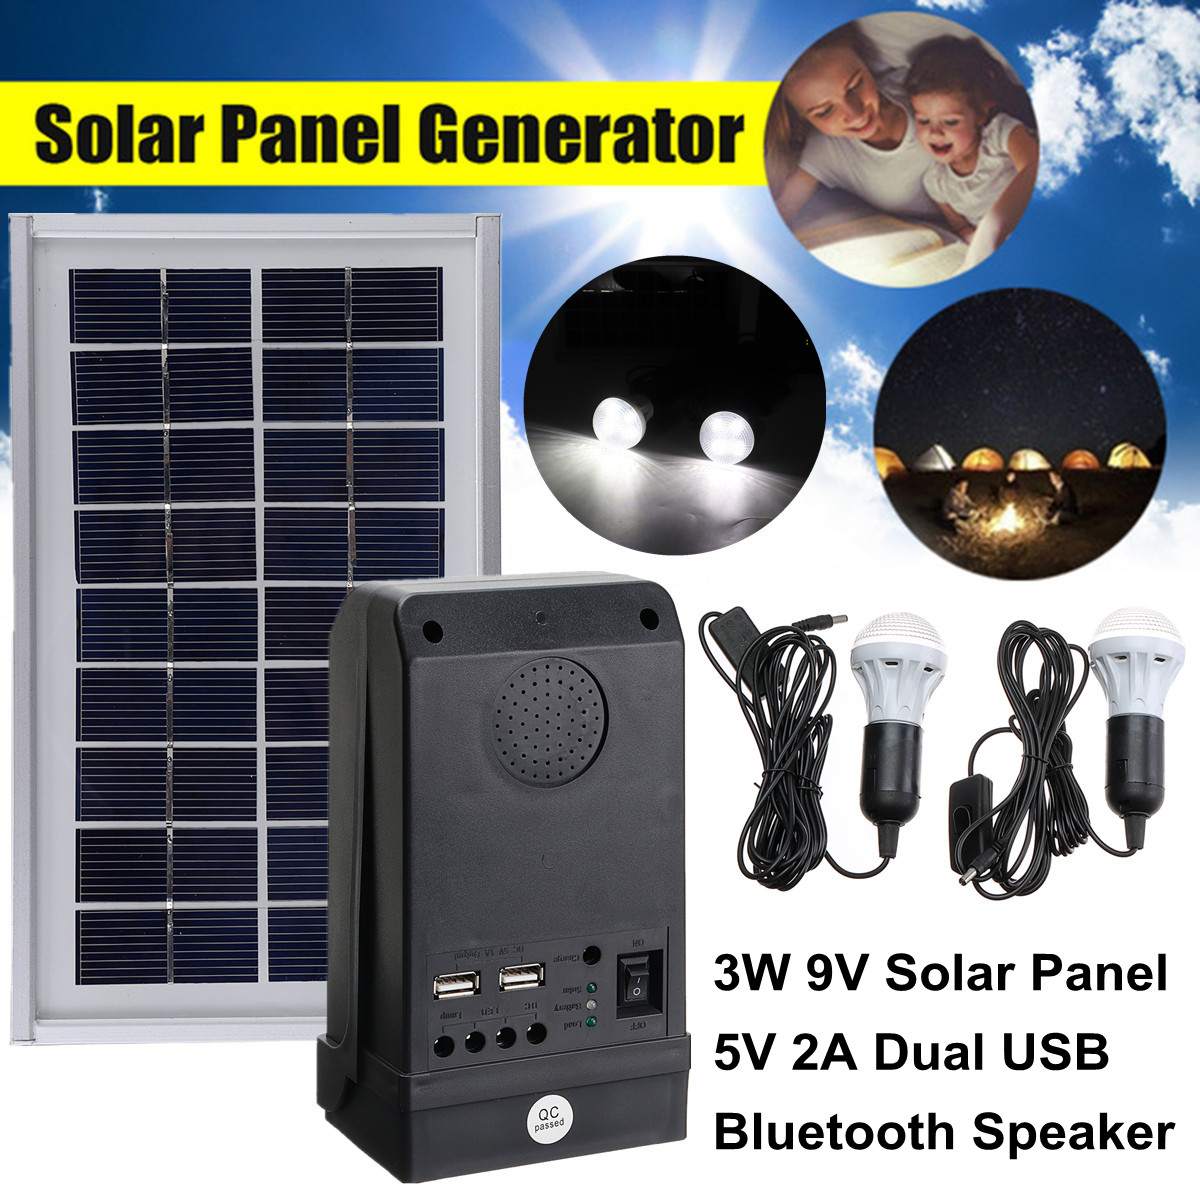 LED Light 5V 2A USB Charger Solar Panel Power Generator System with Bluetooth Speaker Reusable Durable Camping Large Capacity diy 5v 2a voltage regulator junction box solar panel charger special kit